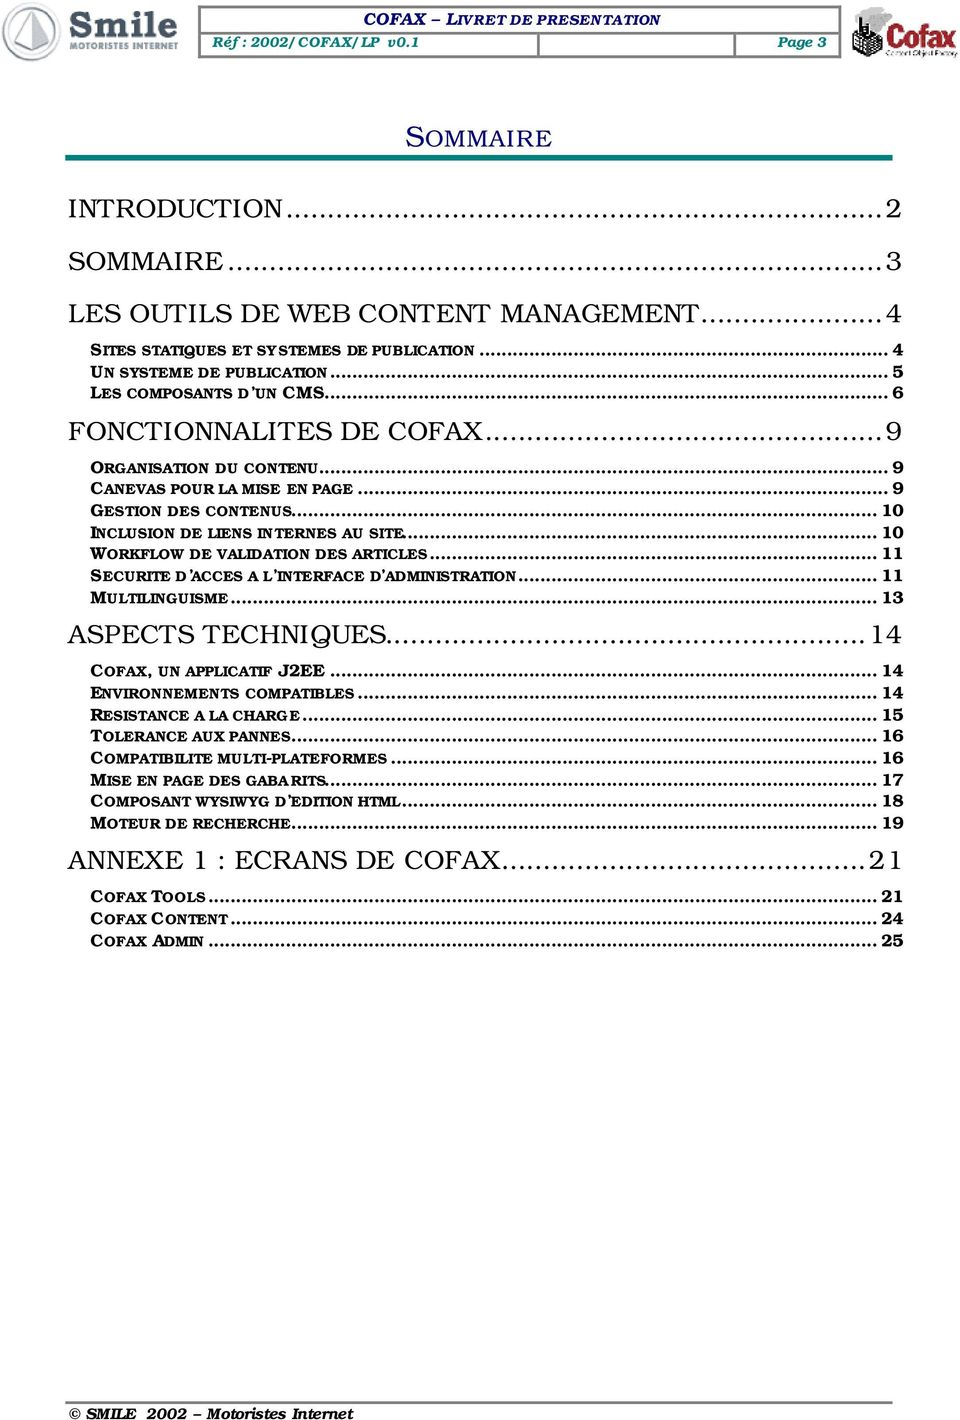 .. 10 WORKFLOW DE VALIDATION DES ARTICLES... 11 SECURITE D ACCES A L INTERFACE D ADMINISTRATION... 11 MULTILINGUISME... 13 ASPECTS TECHNIQUES...14 COFAX, UN APPLICATIF J2EE.